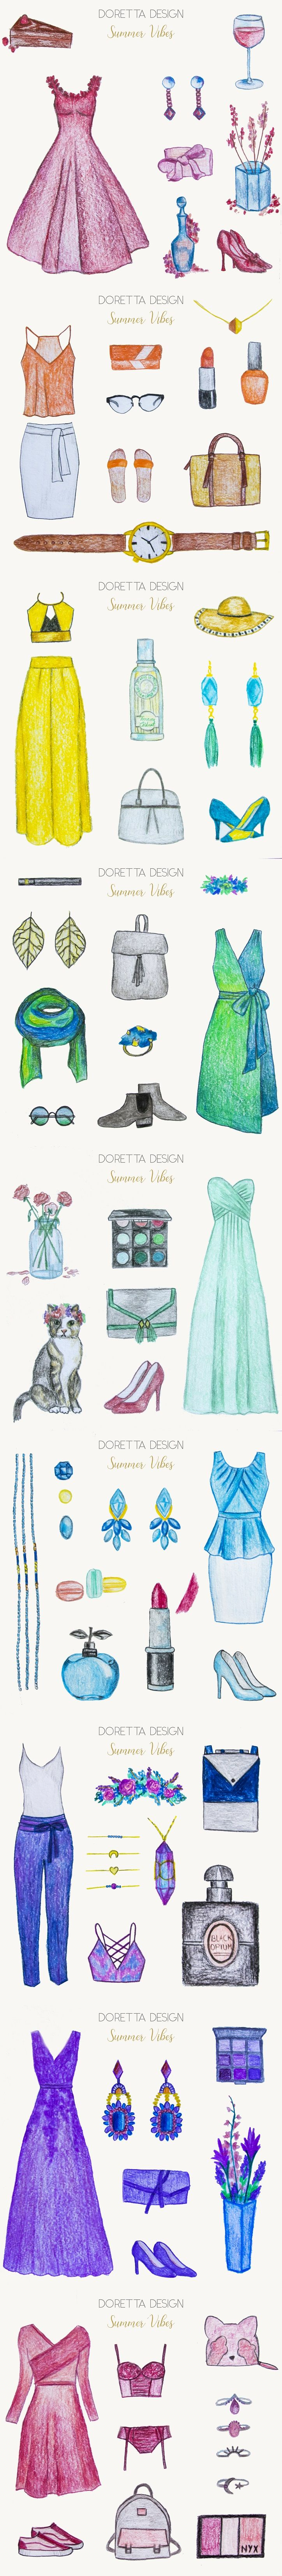 Fashion illustration with summer inspired outfits and accessories.